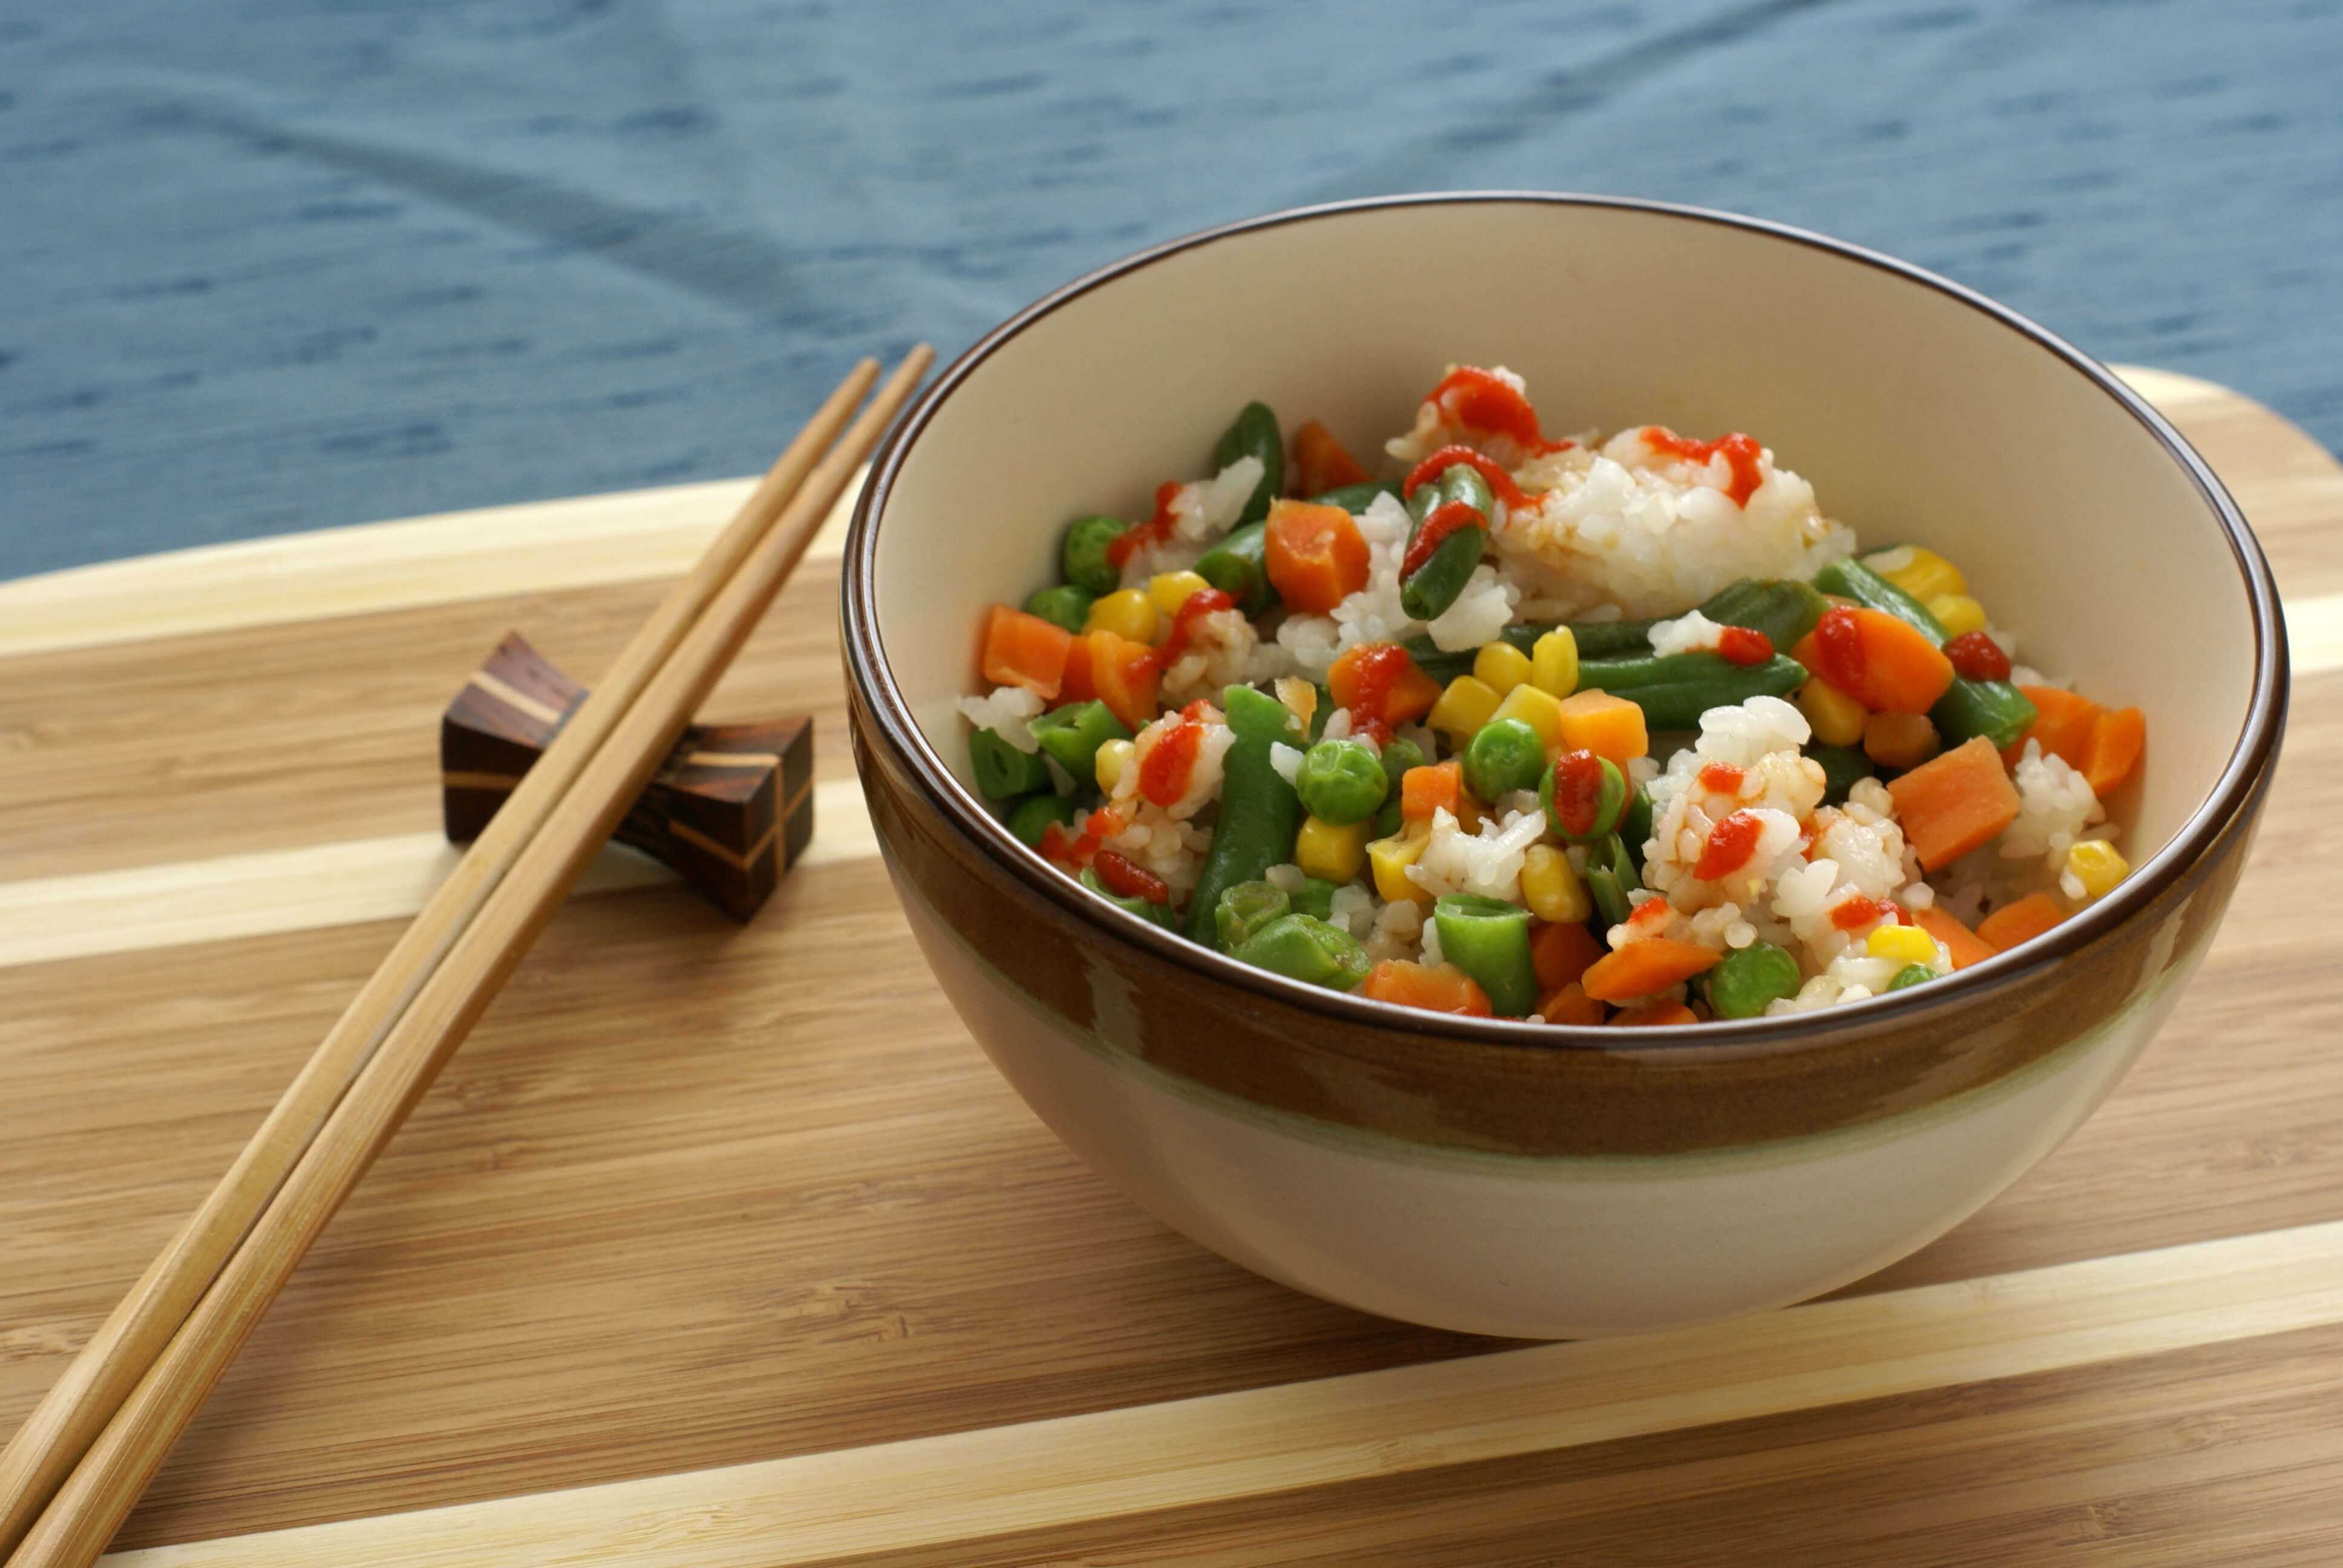 chop sticks with bowl of rice and vegetables